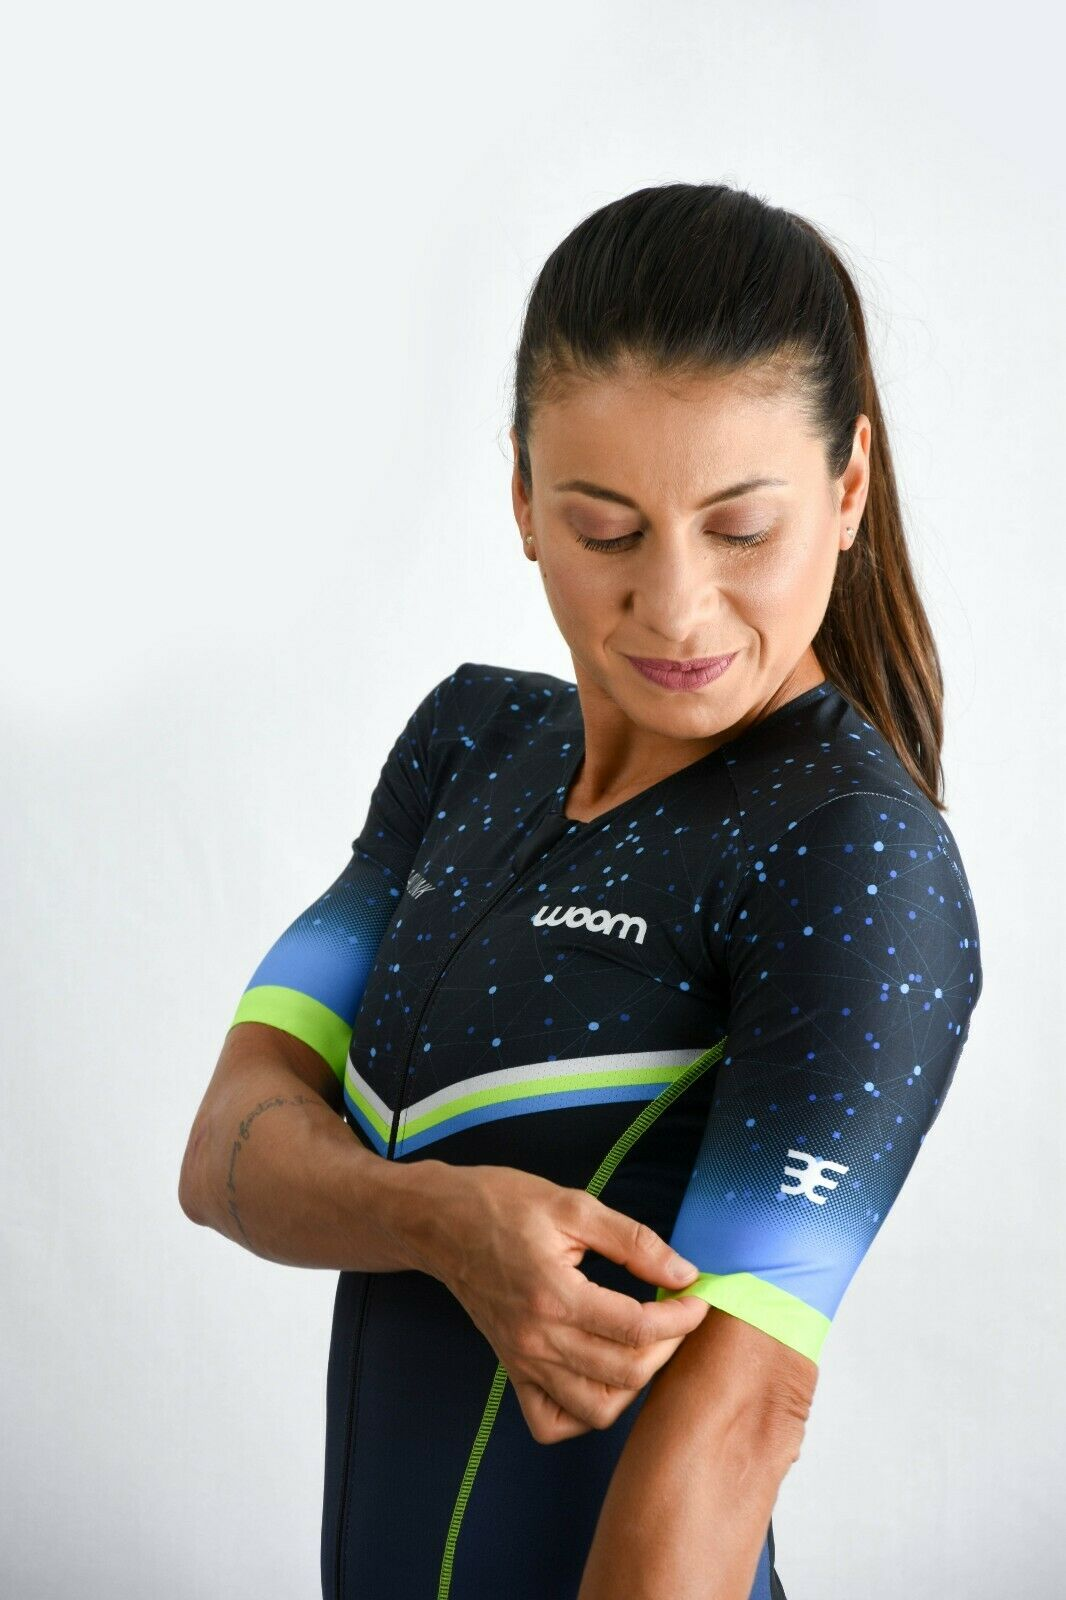 Women's Aero Sleeve Two piece Tri Kit - WOOM (Link)